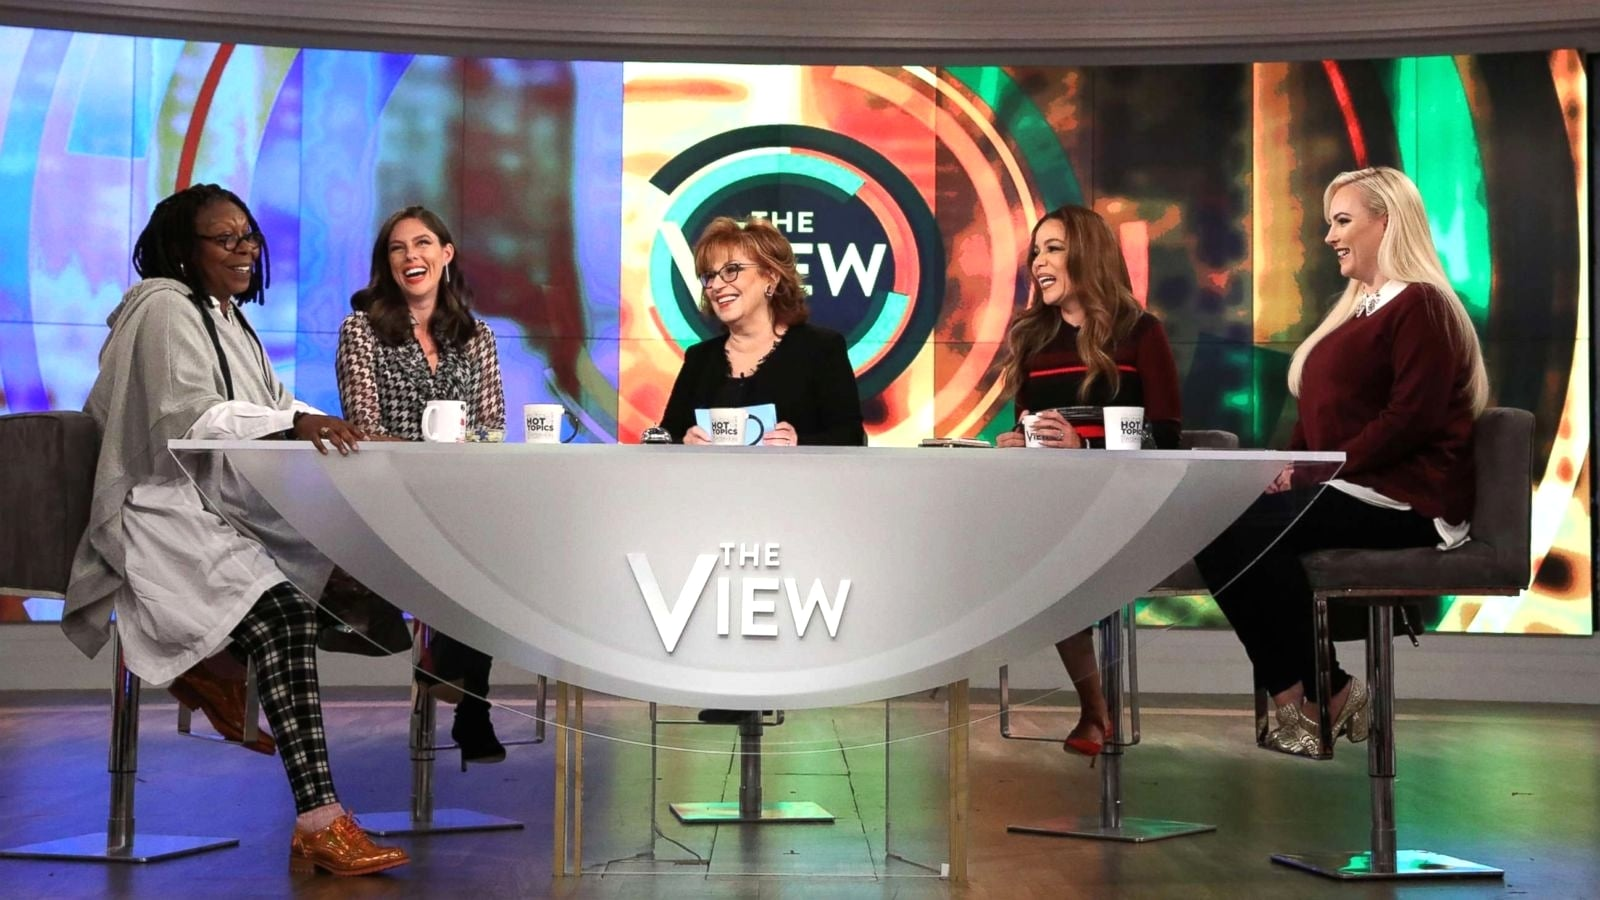 The View - Season 3 Episode 254 : Season 3, Episode 254